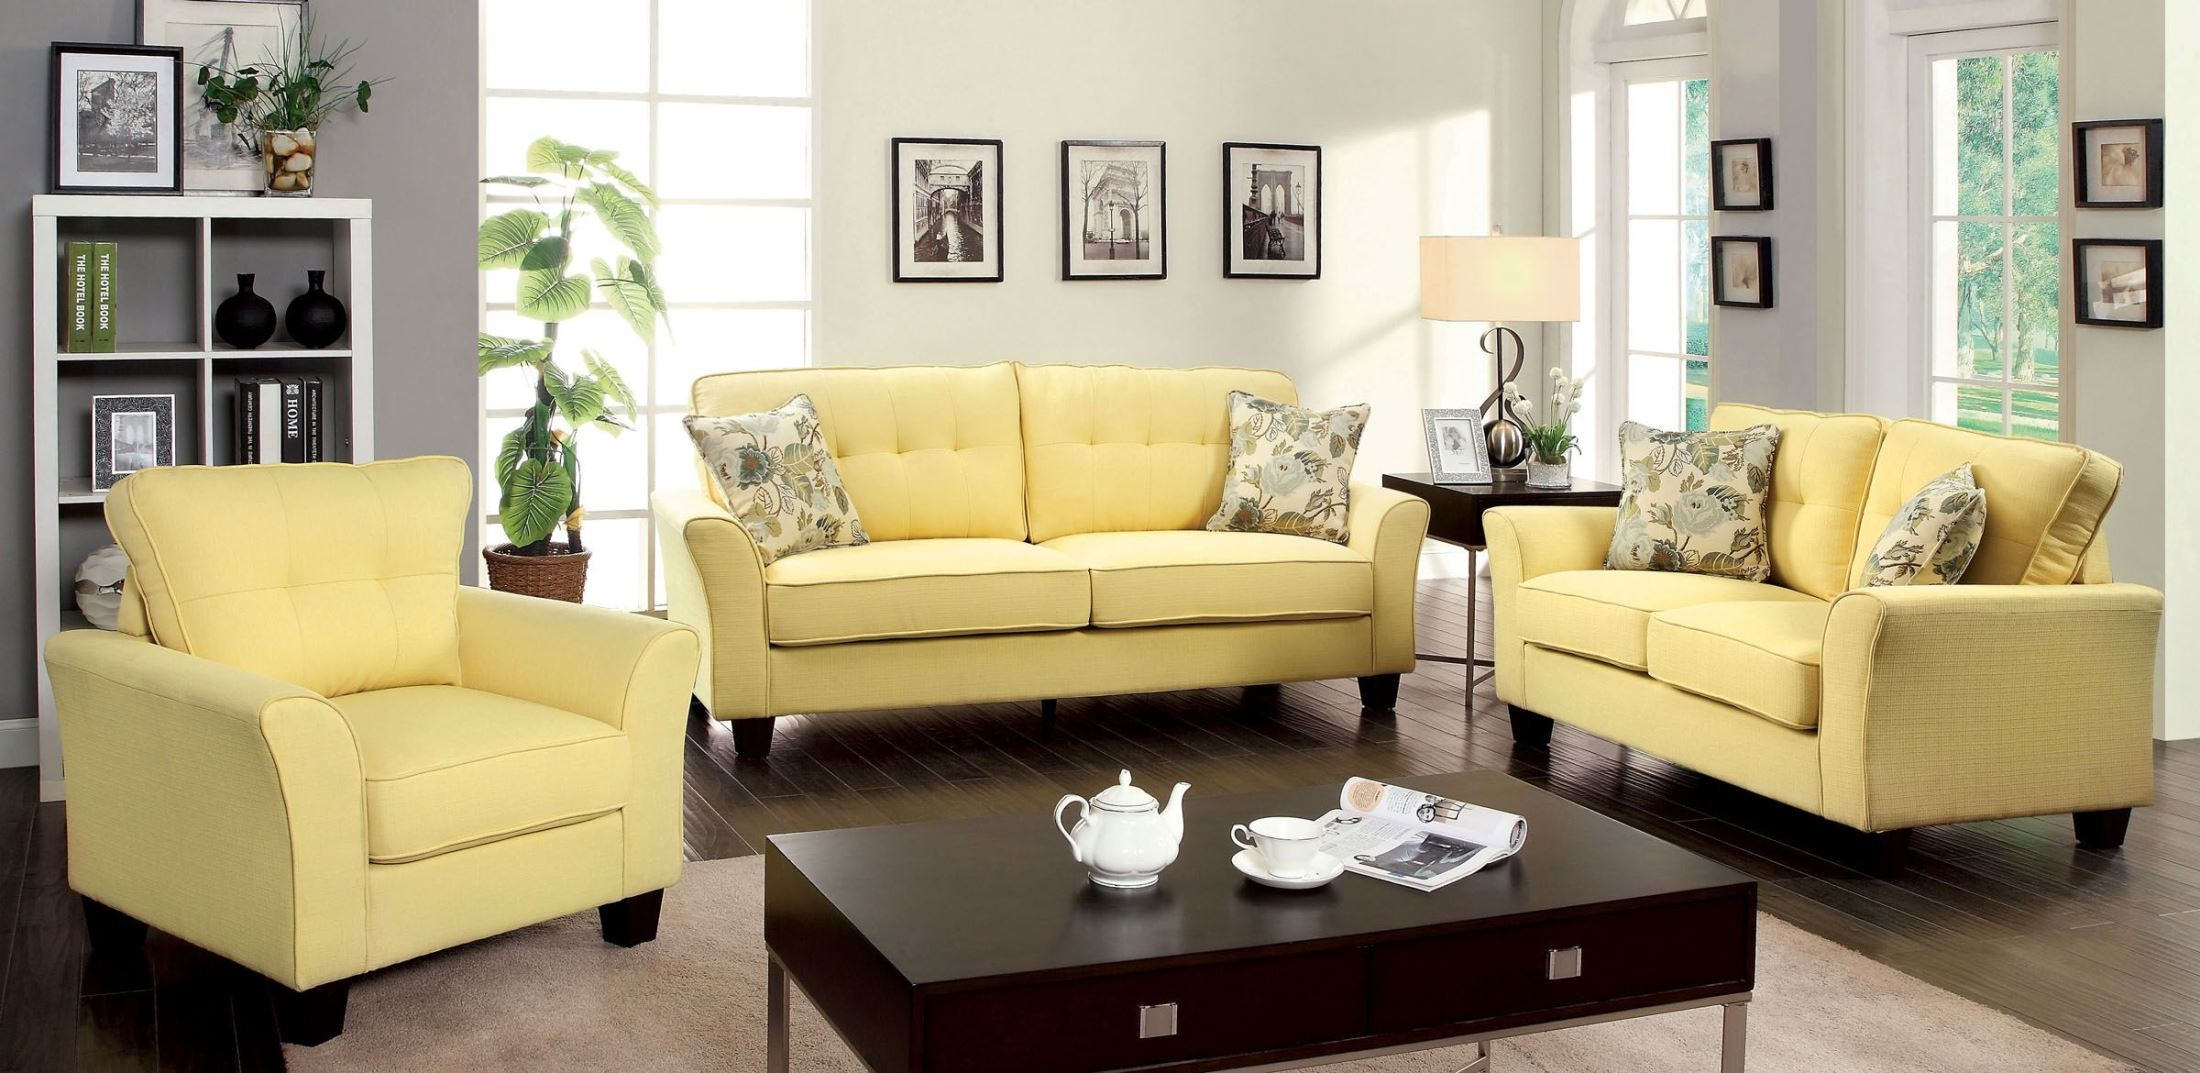 Claire yellow fabric living room set from furniture of america